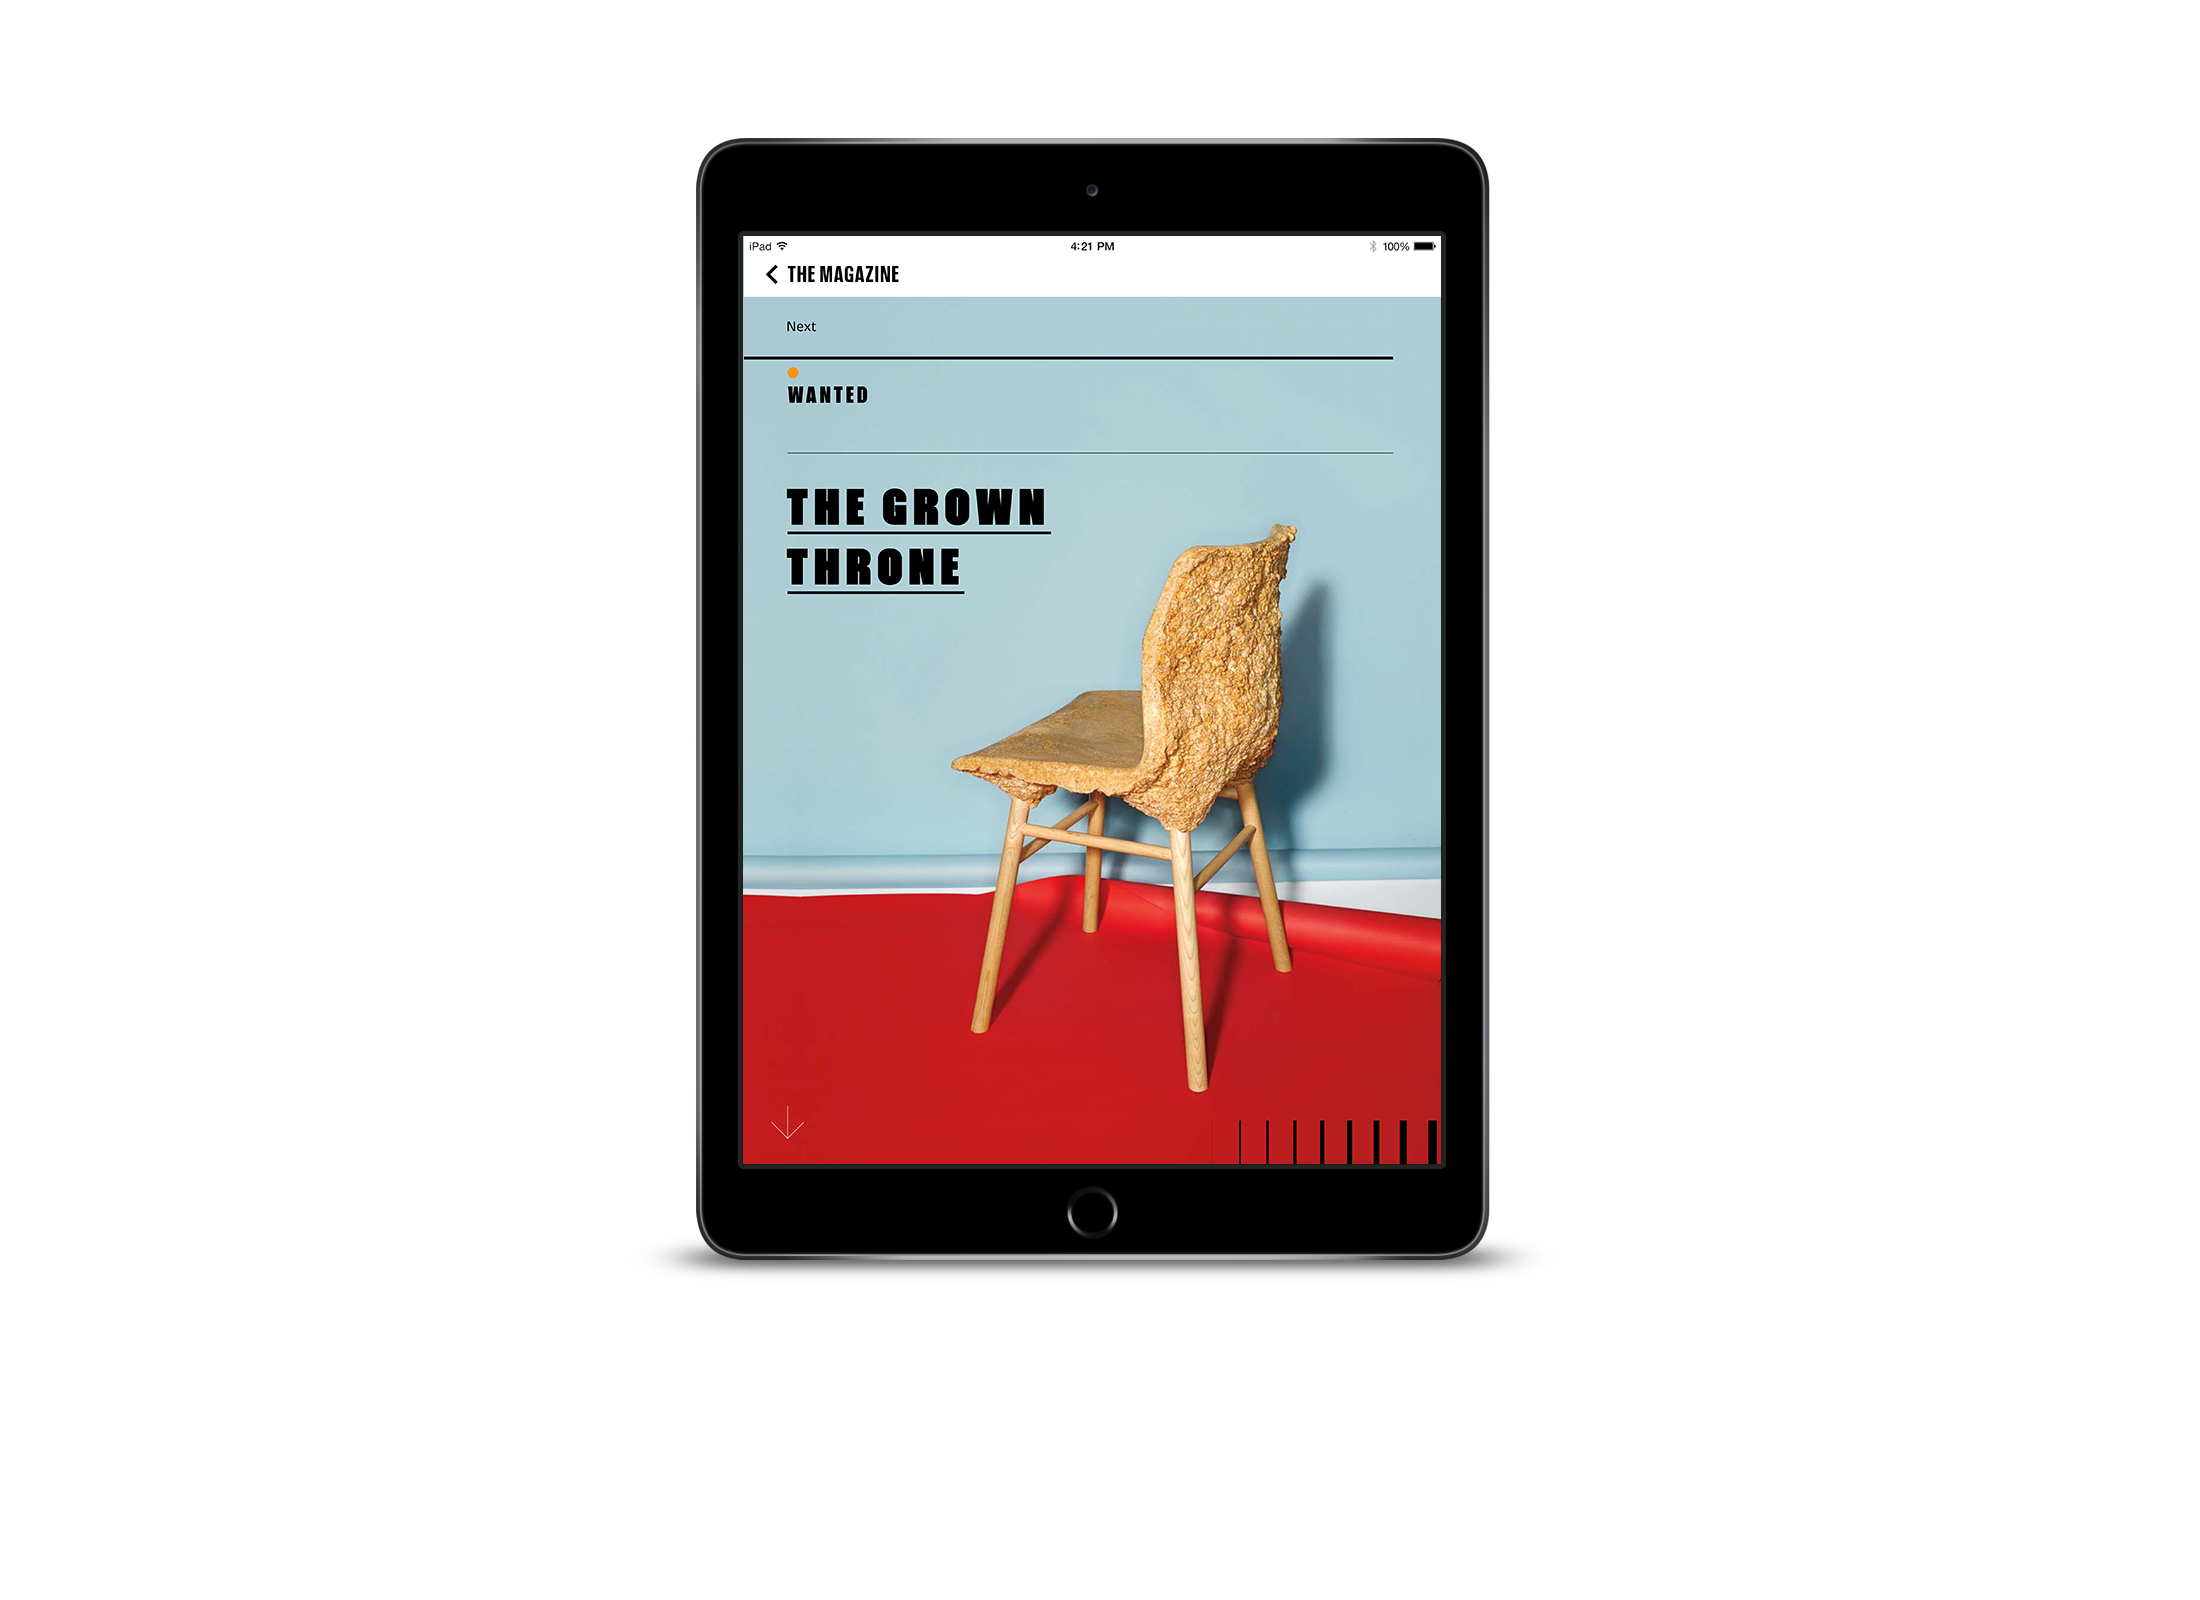 FastCompany_Tablet_07_MagArticle.01.png